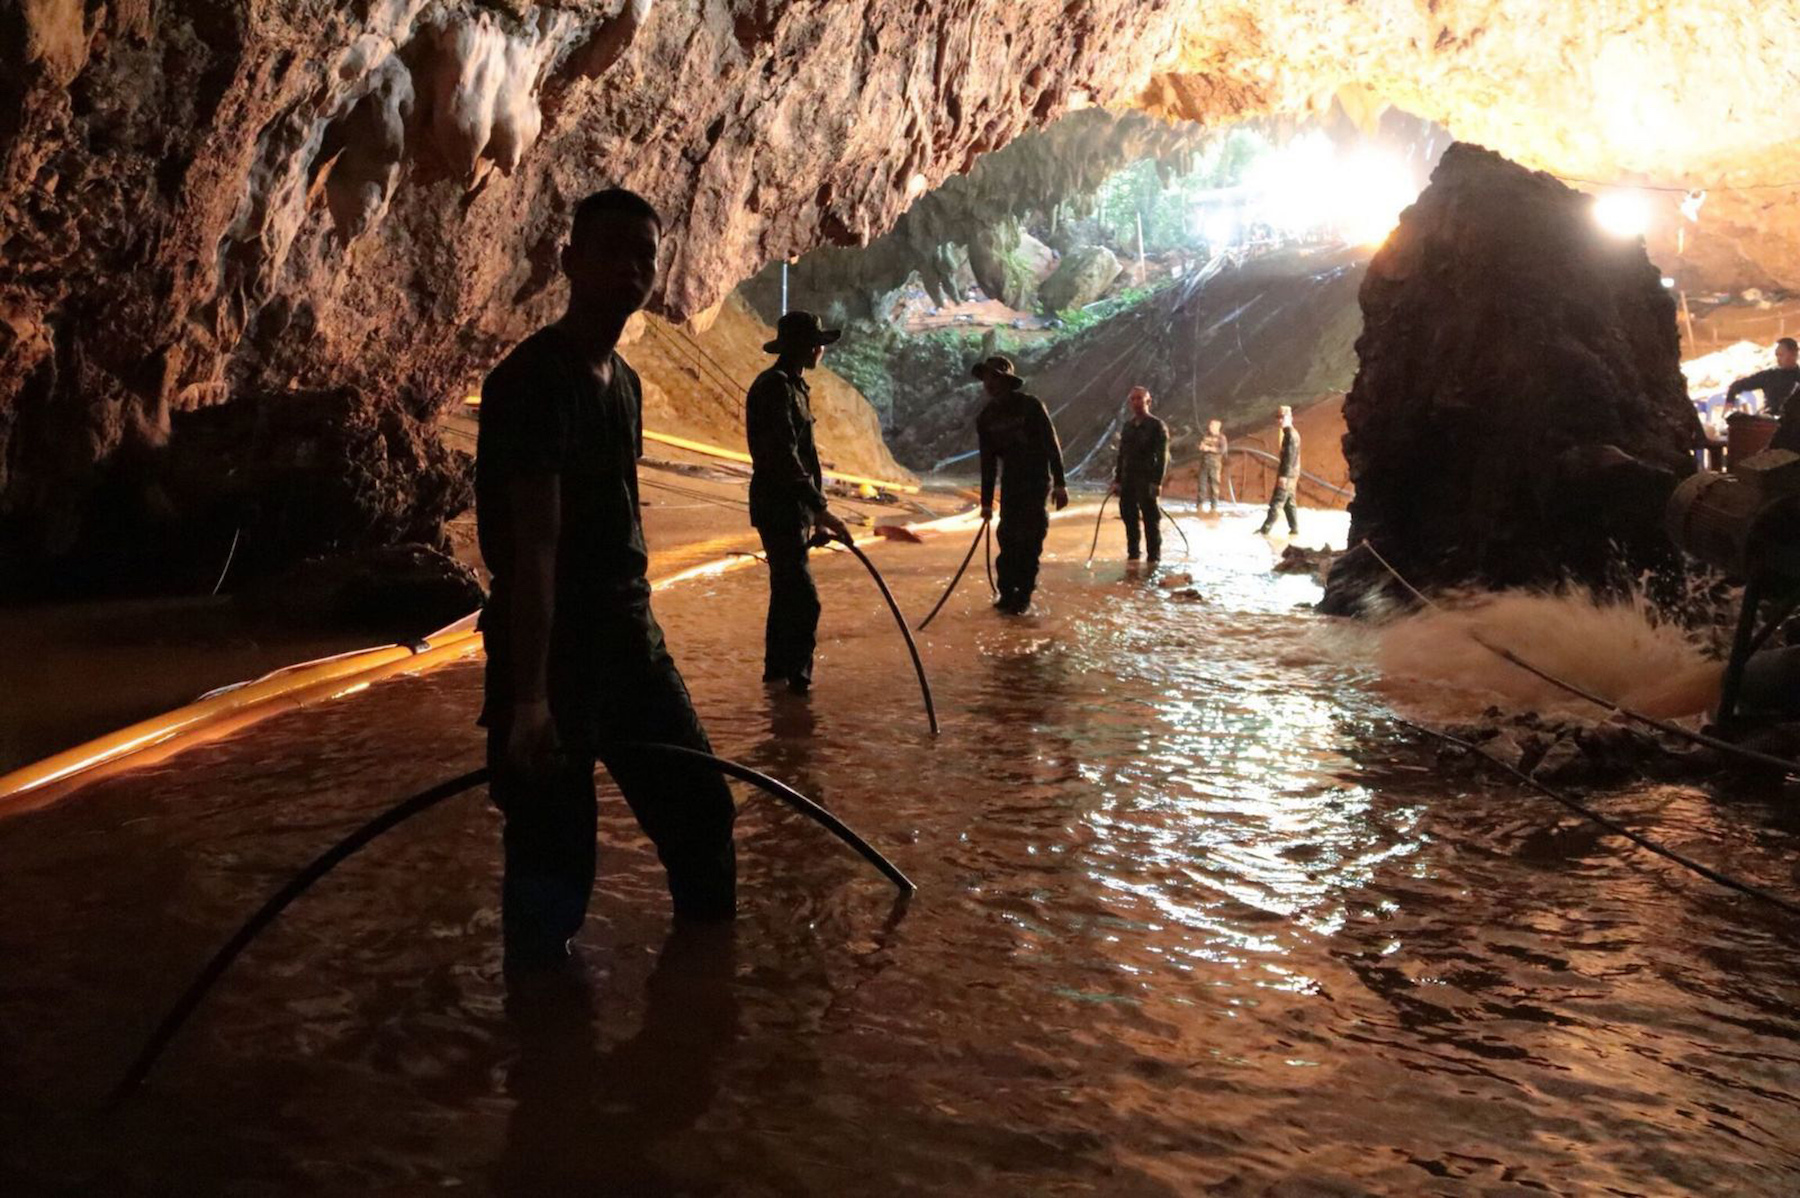 "<div class=""meta image-caption""><div class=""origin-logo origin-image ap""><span>AP</span></div><span class=""caption-text"">Thai rescue teams arrange a water pumping system at the entrance to a flooded cave complex where 12 boys and their soccer coach went missing in northern Thailand. (Thai Navy via AP)</span></div>"